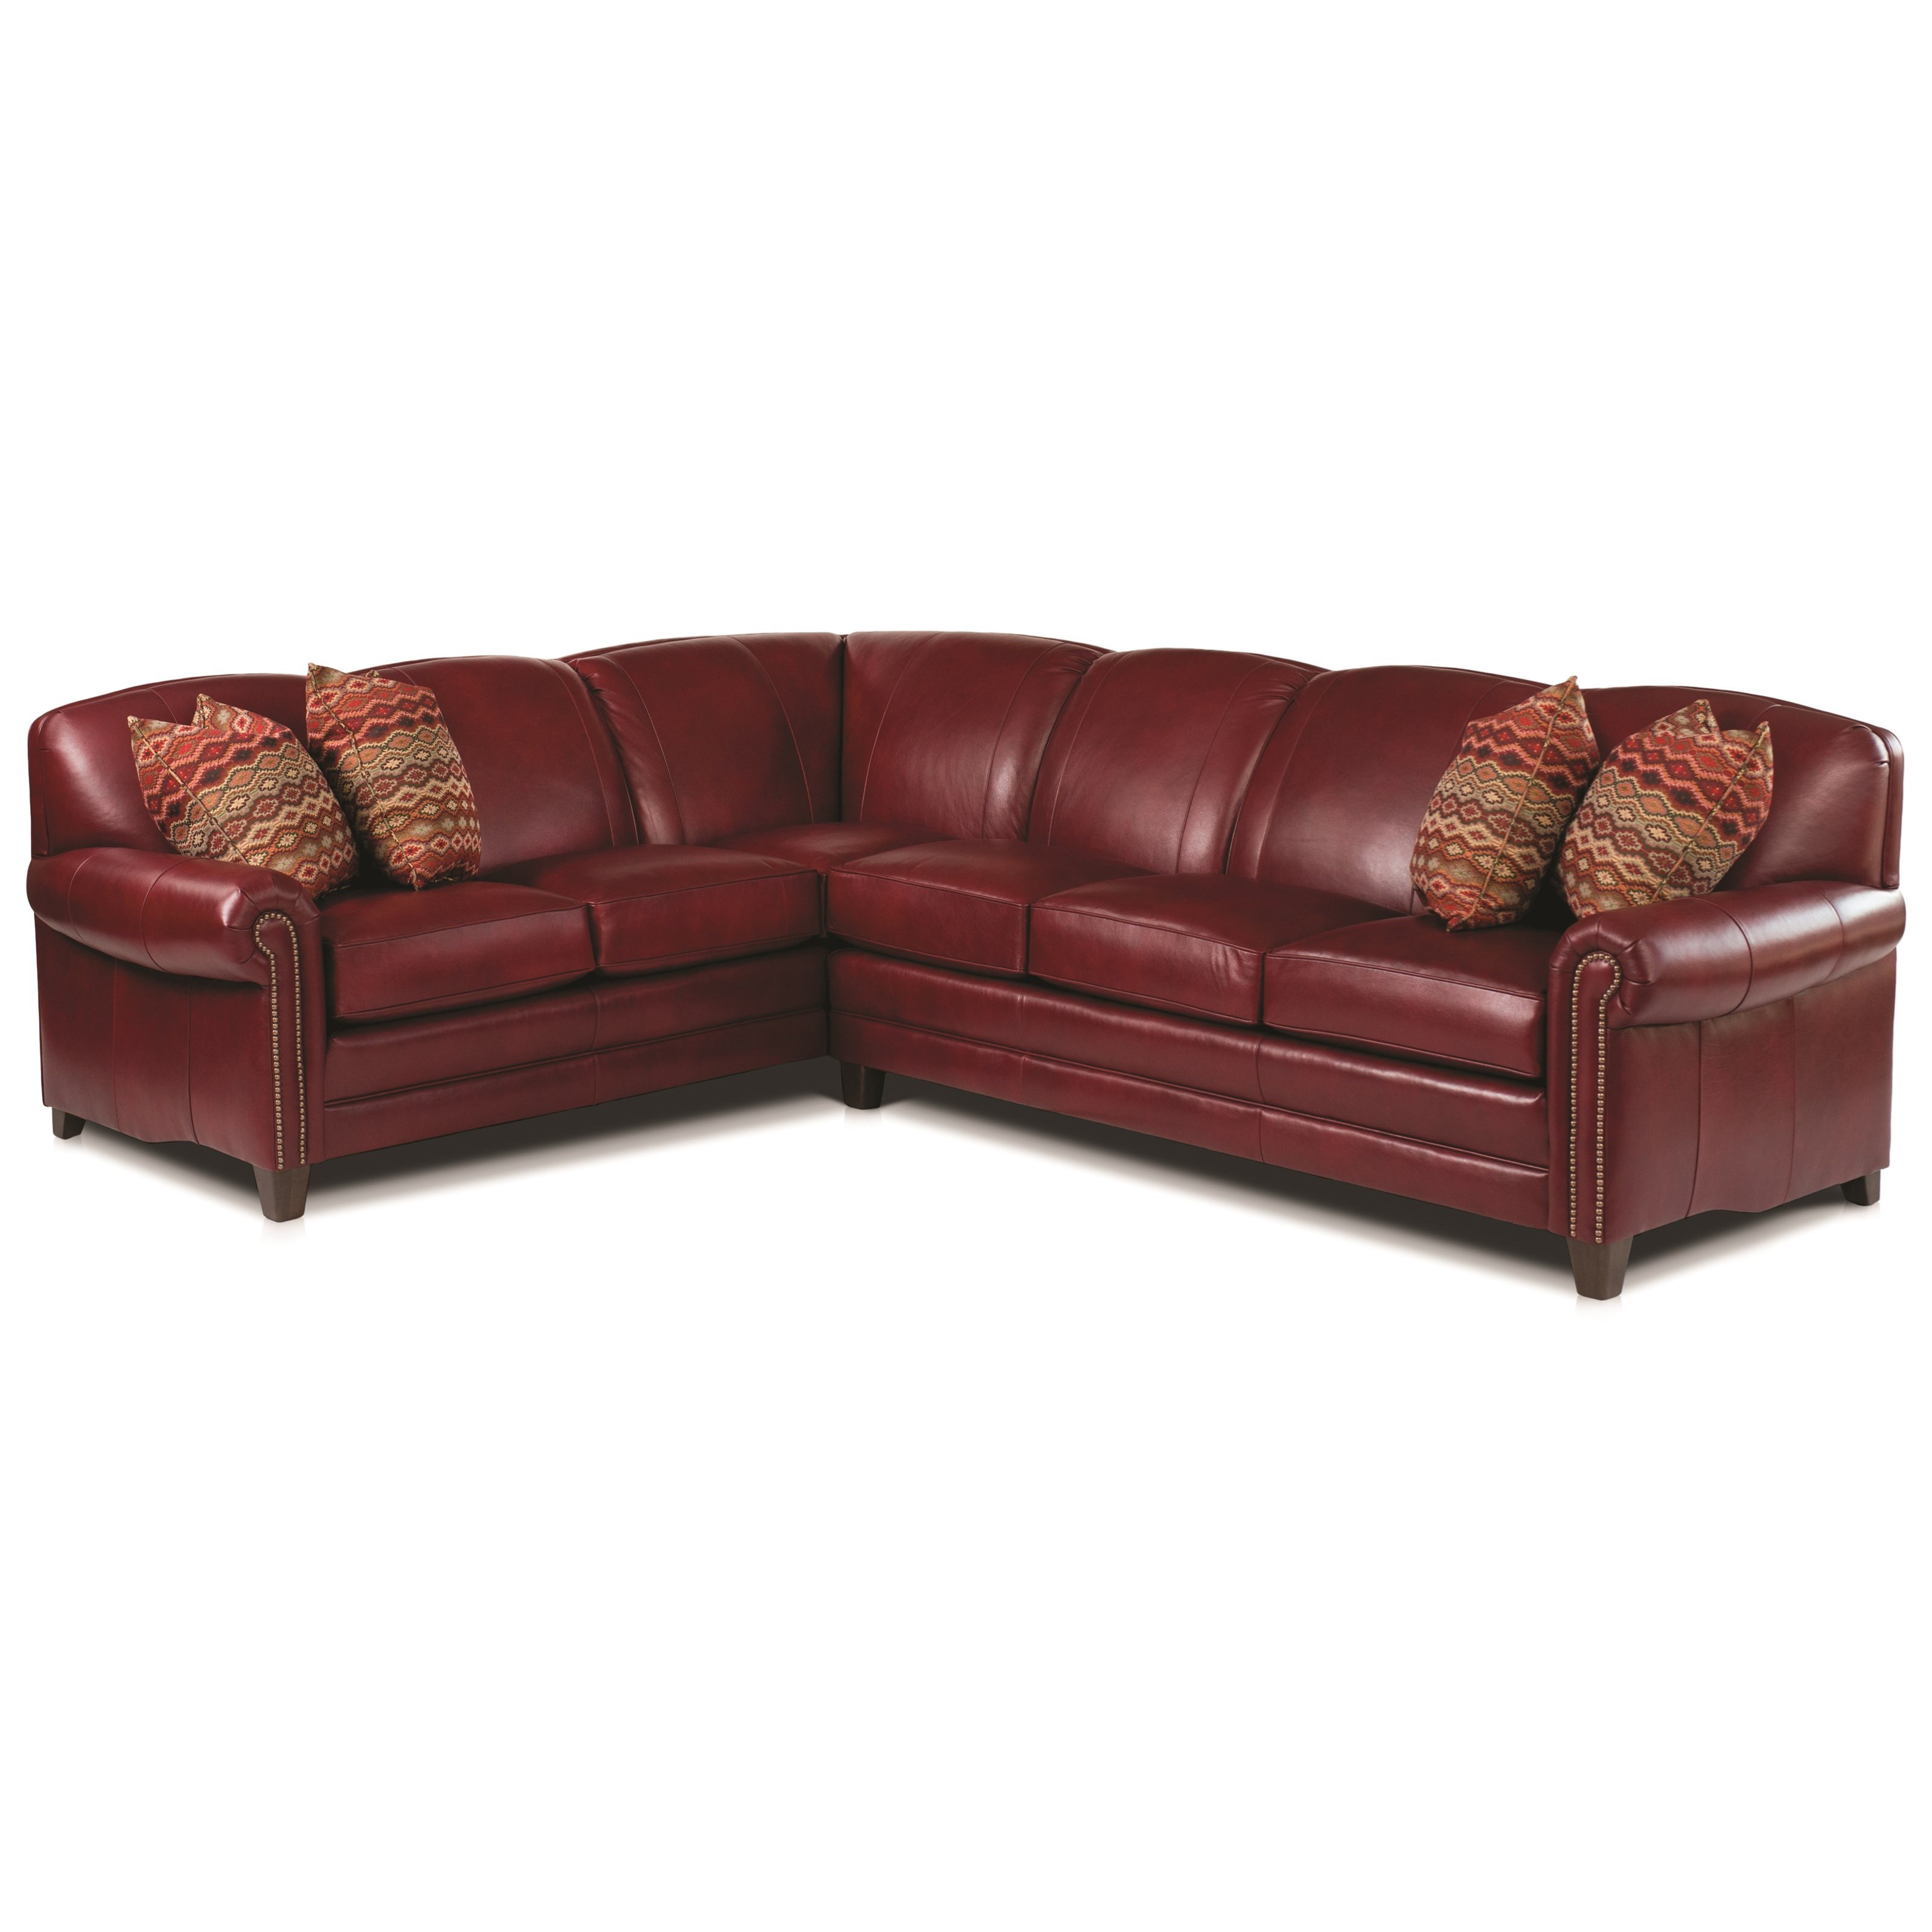 397 Stationary Sectional by Smith Brothers at Mueller Furniture